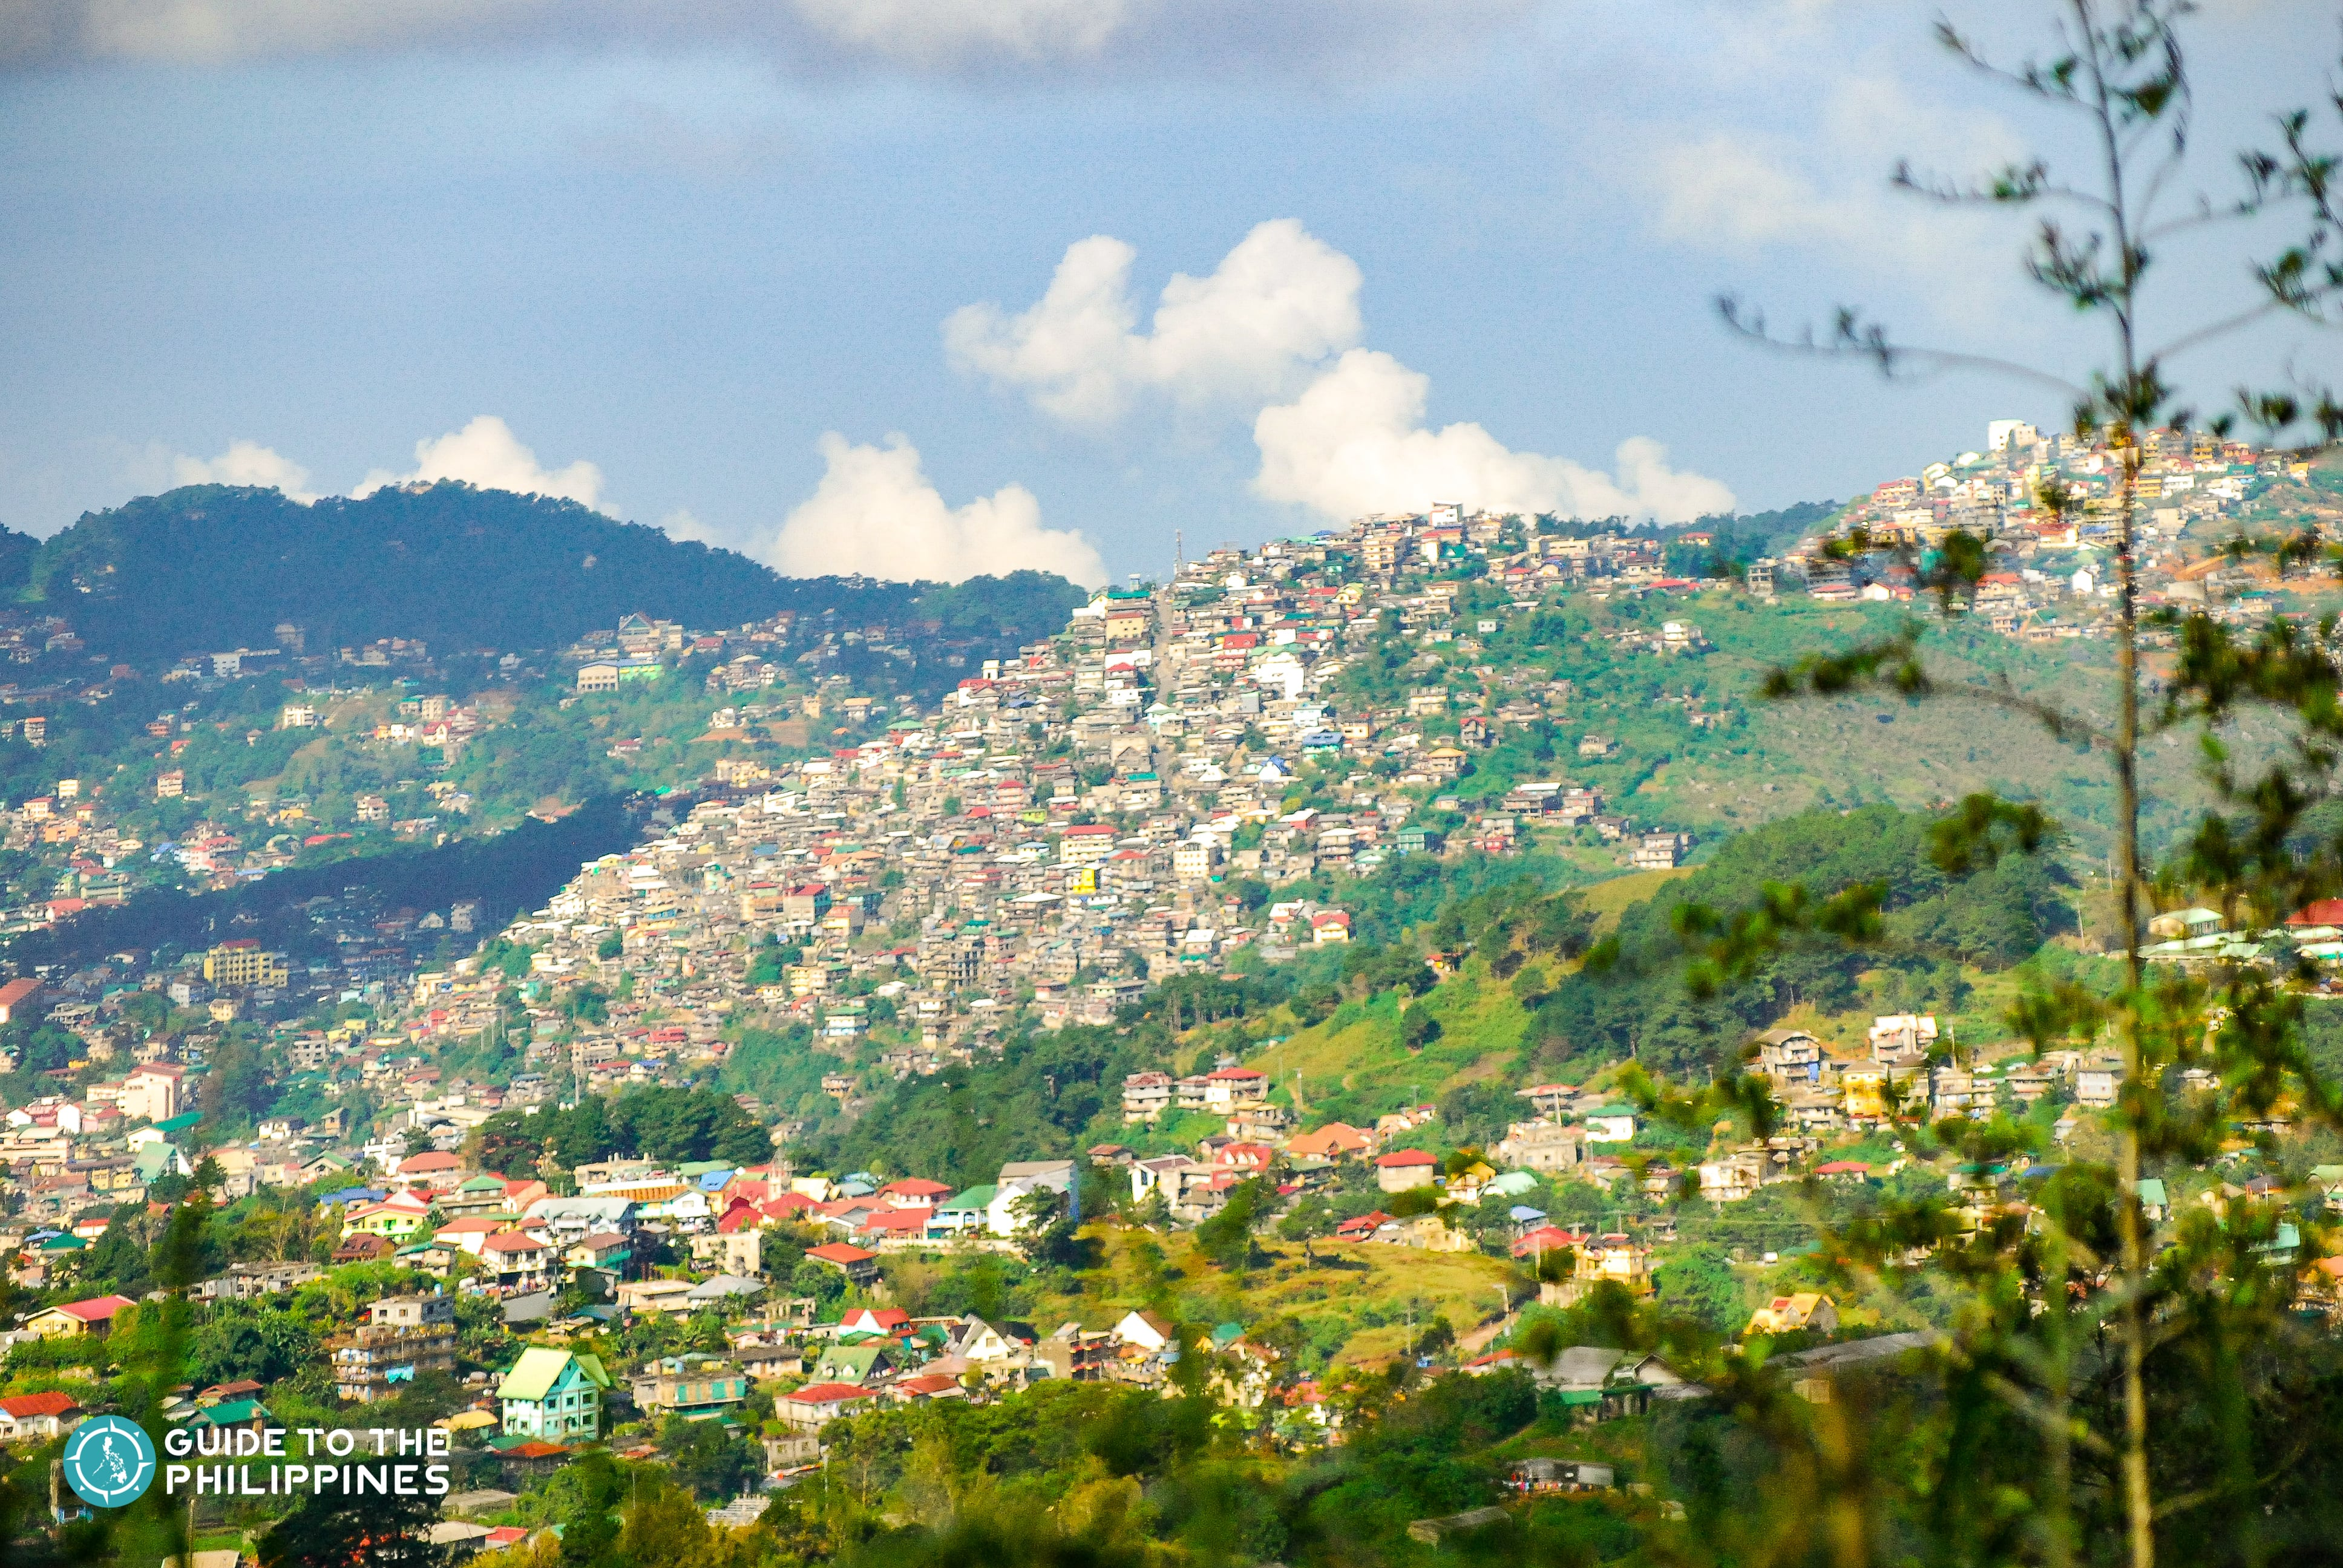 View of Baguio City houses from Mines View Park